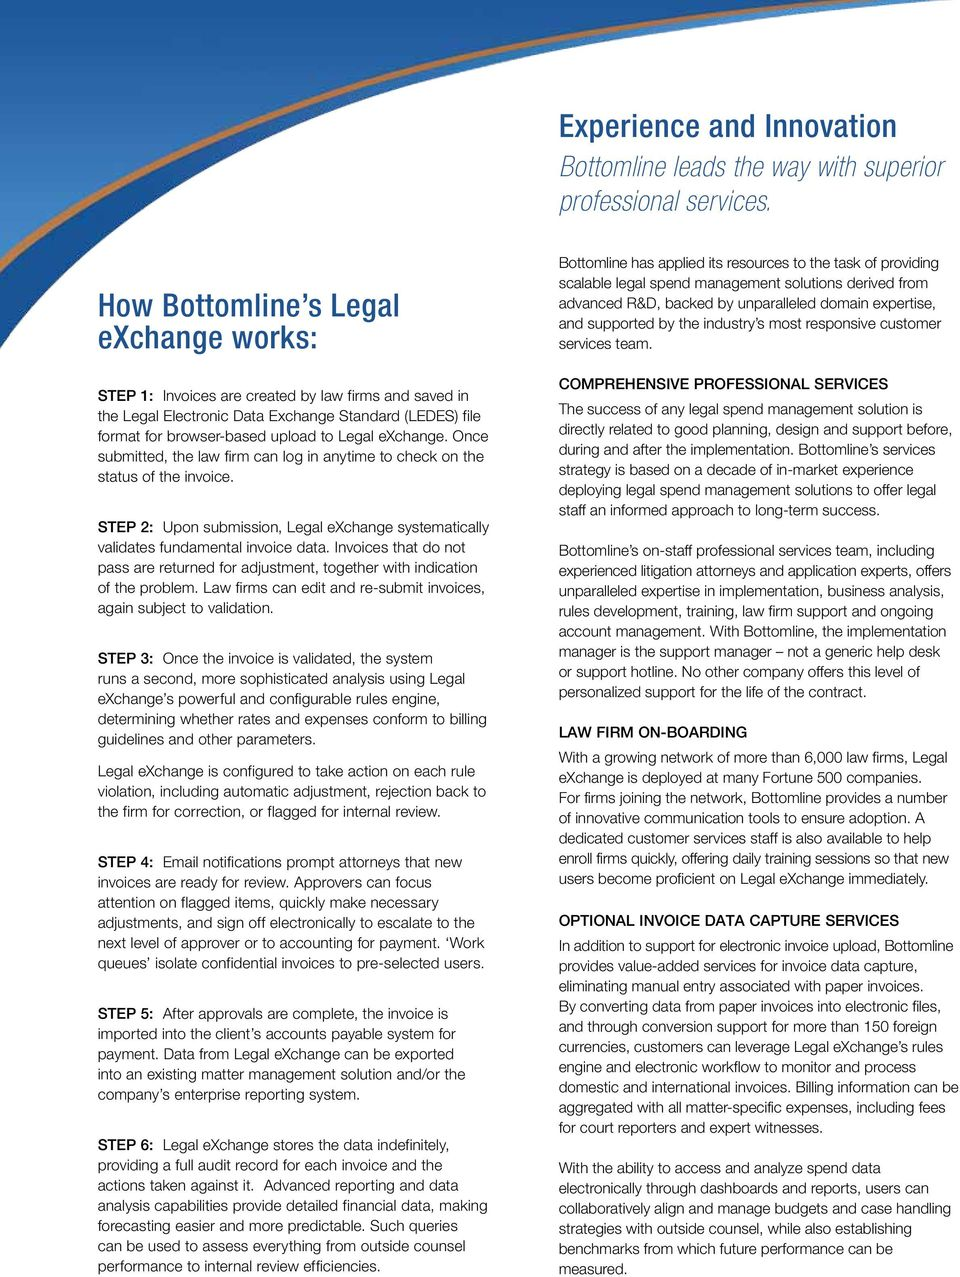 exchange. Once submitted, the law firm can log in anytime to check on the status of the invoice. Step 2: Upon submission, Legal exchange systematically validates fundamental invoice data.